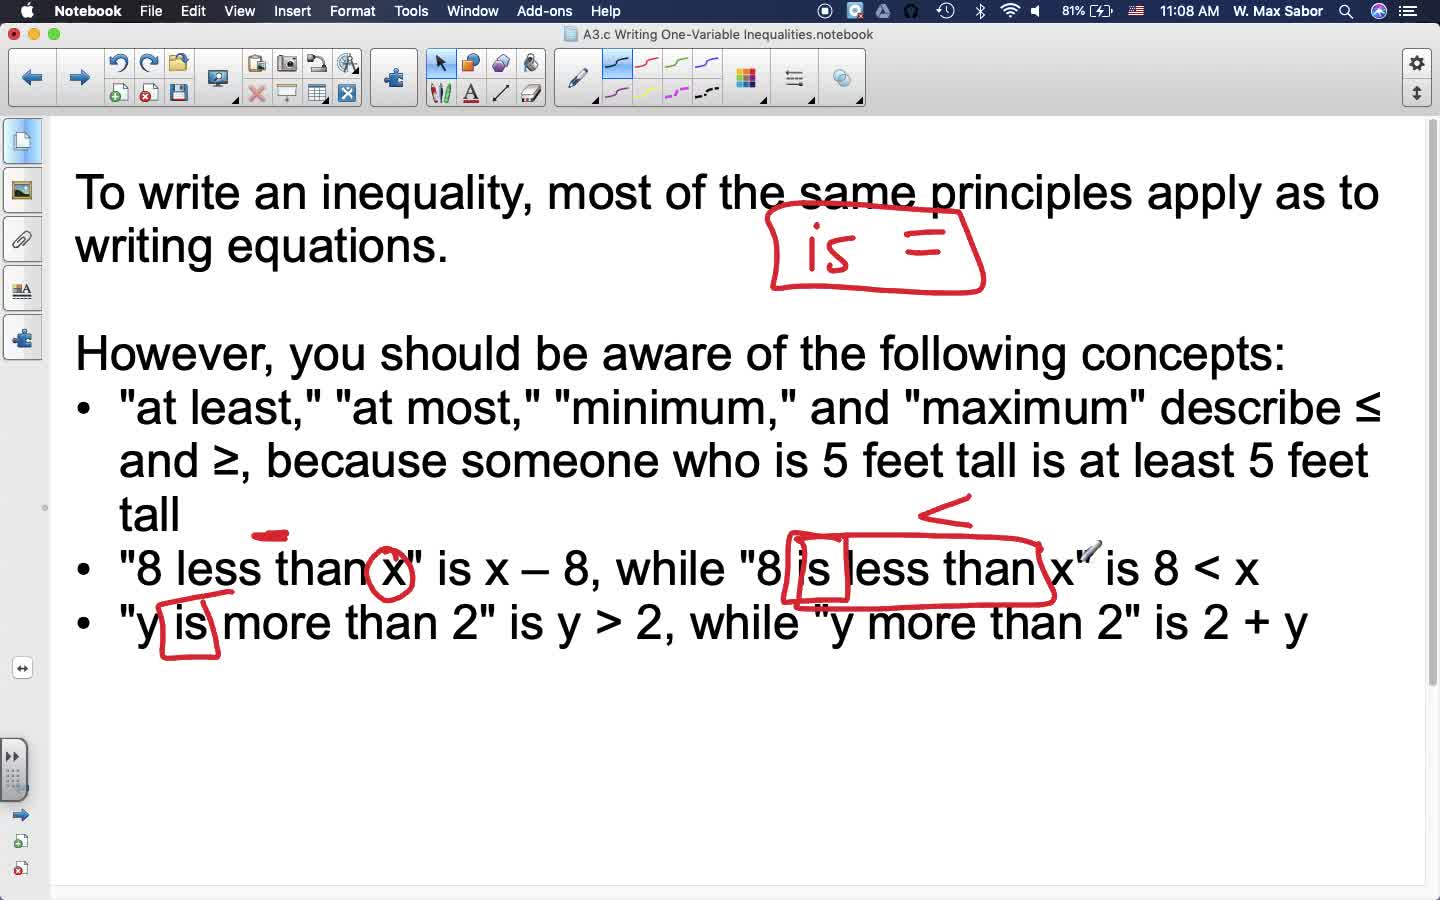 A3.c Writing One-Variable Inequalities